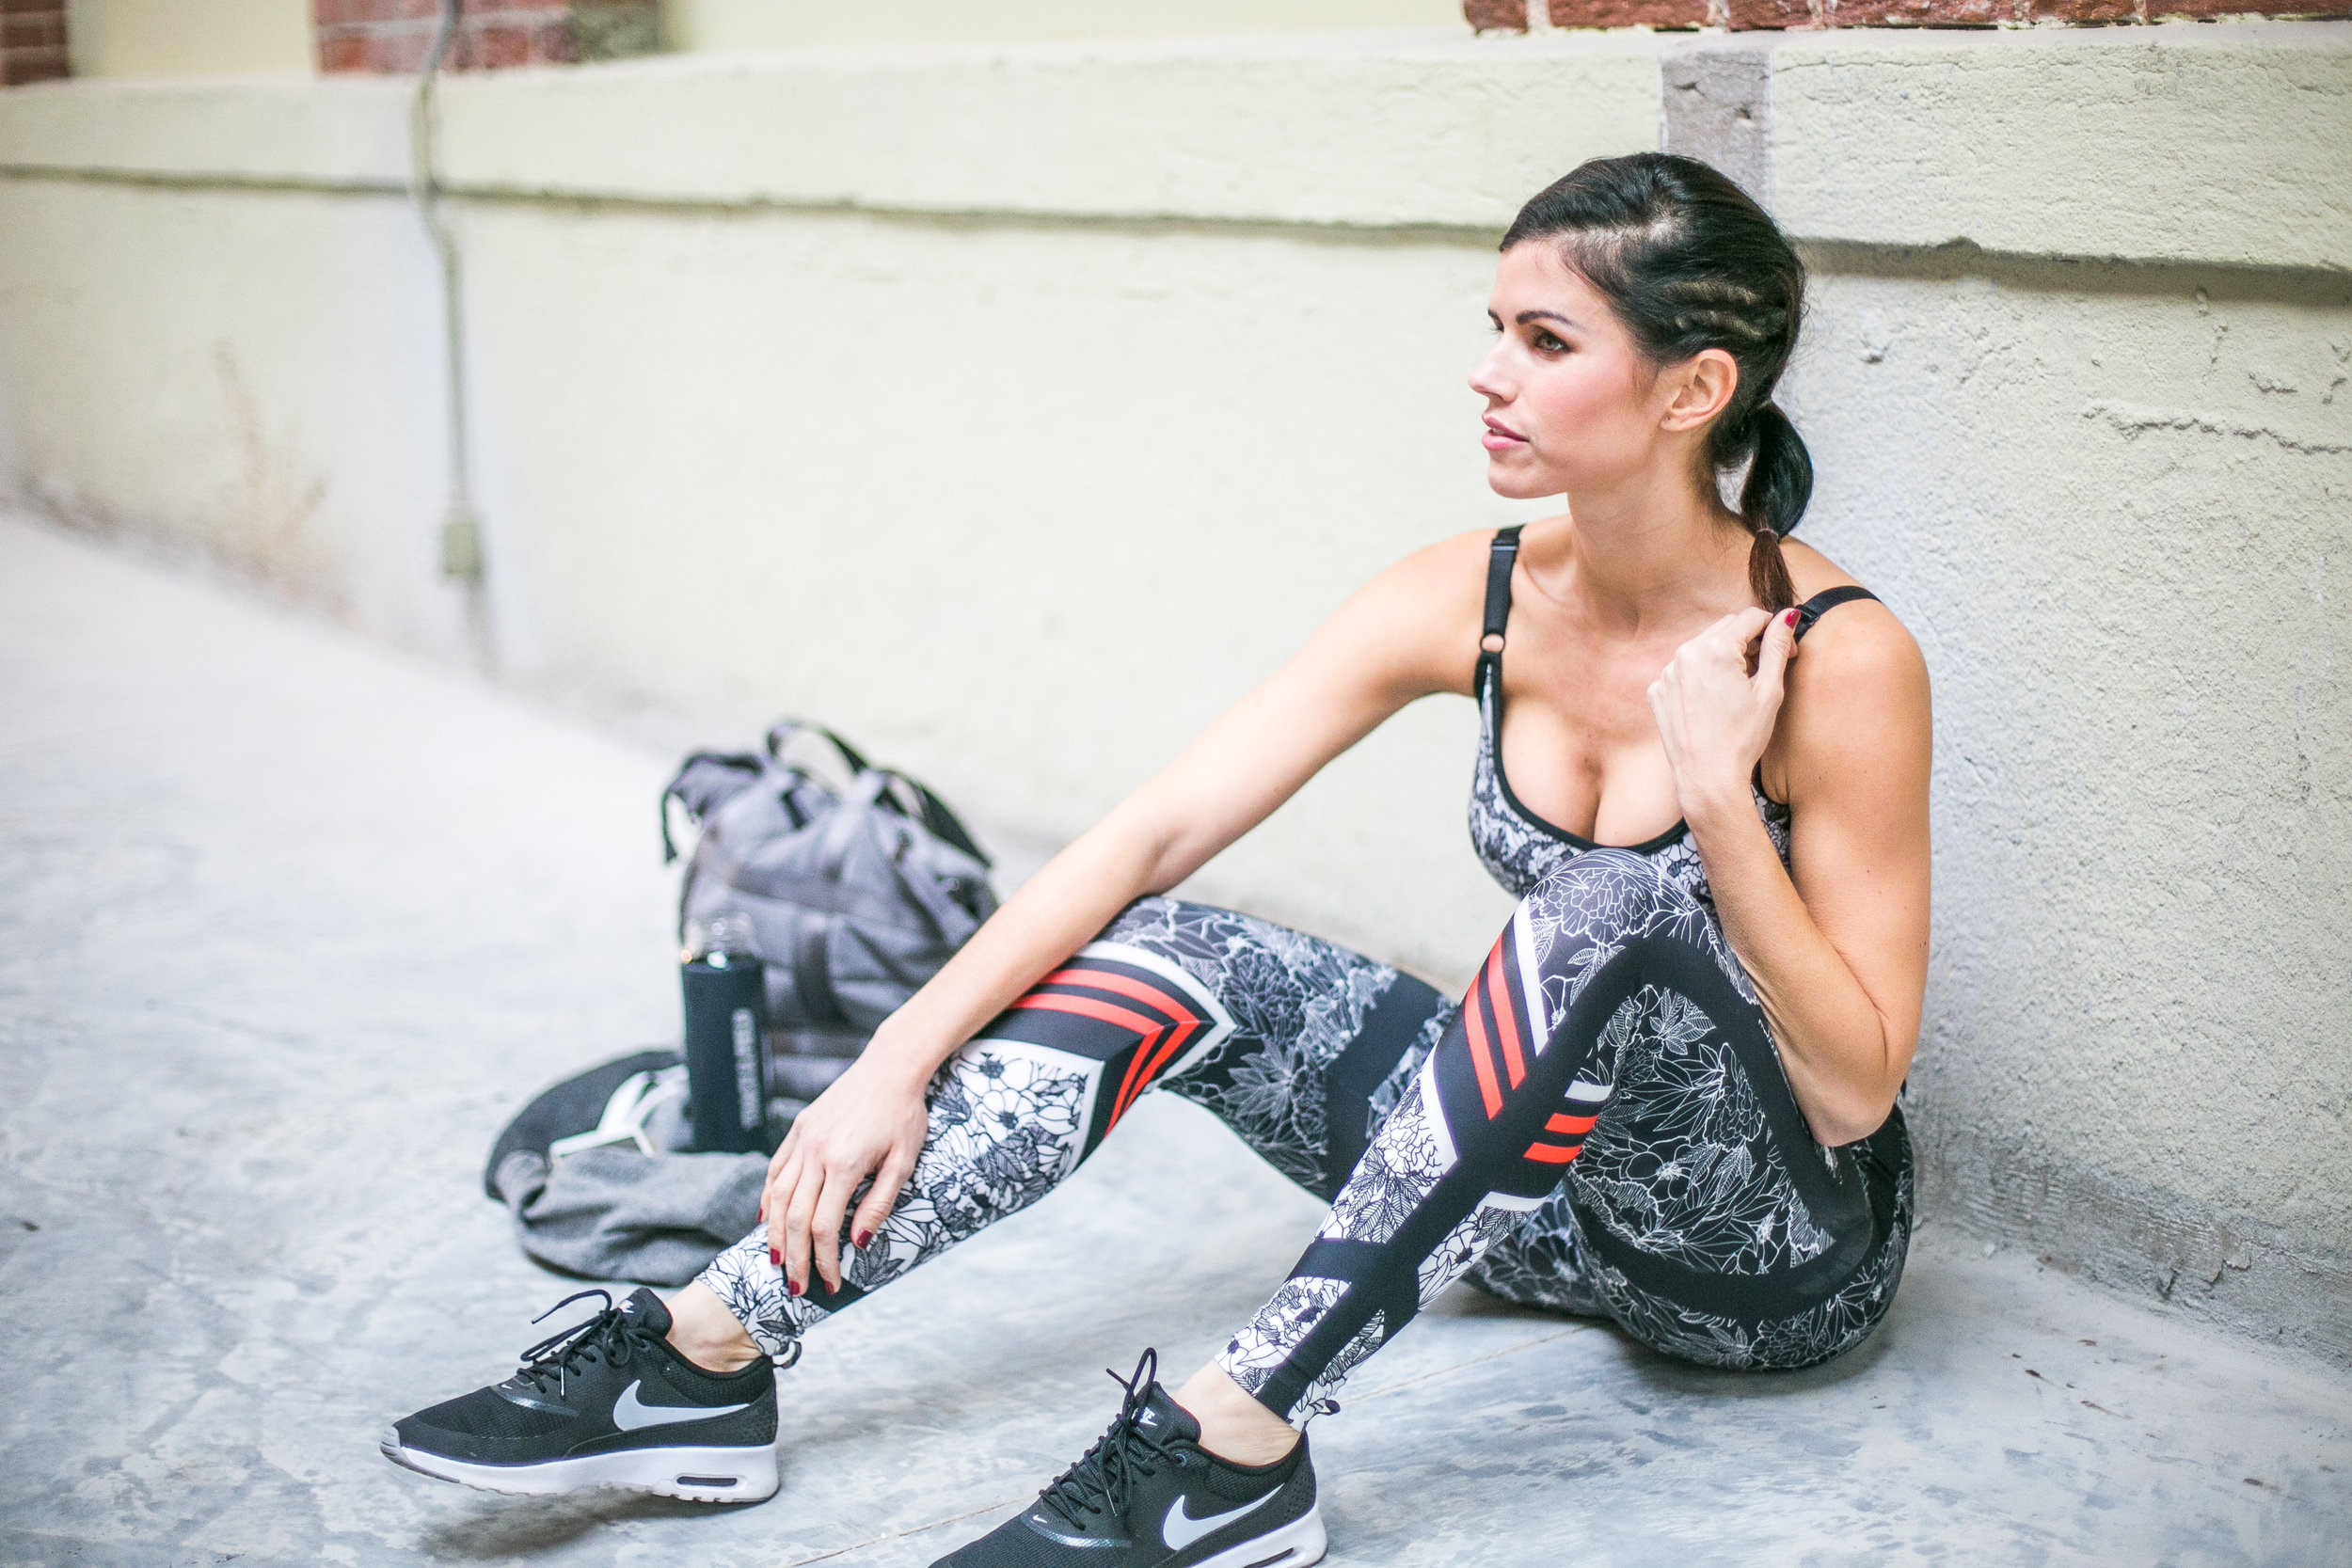 Track and field flower collection pants and sports bra